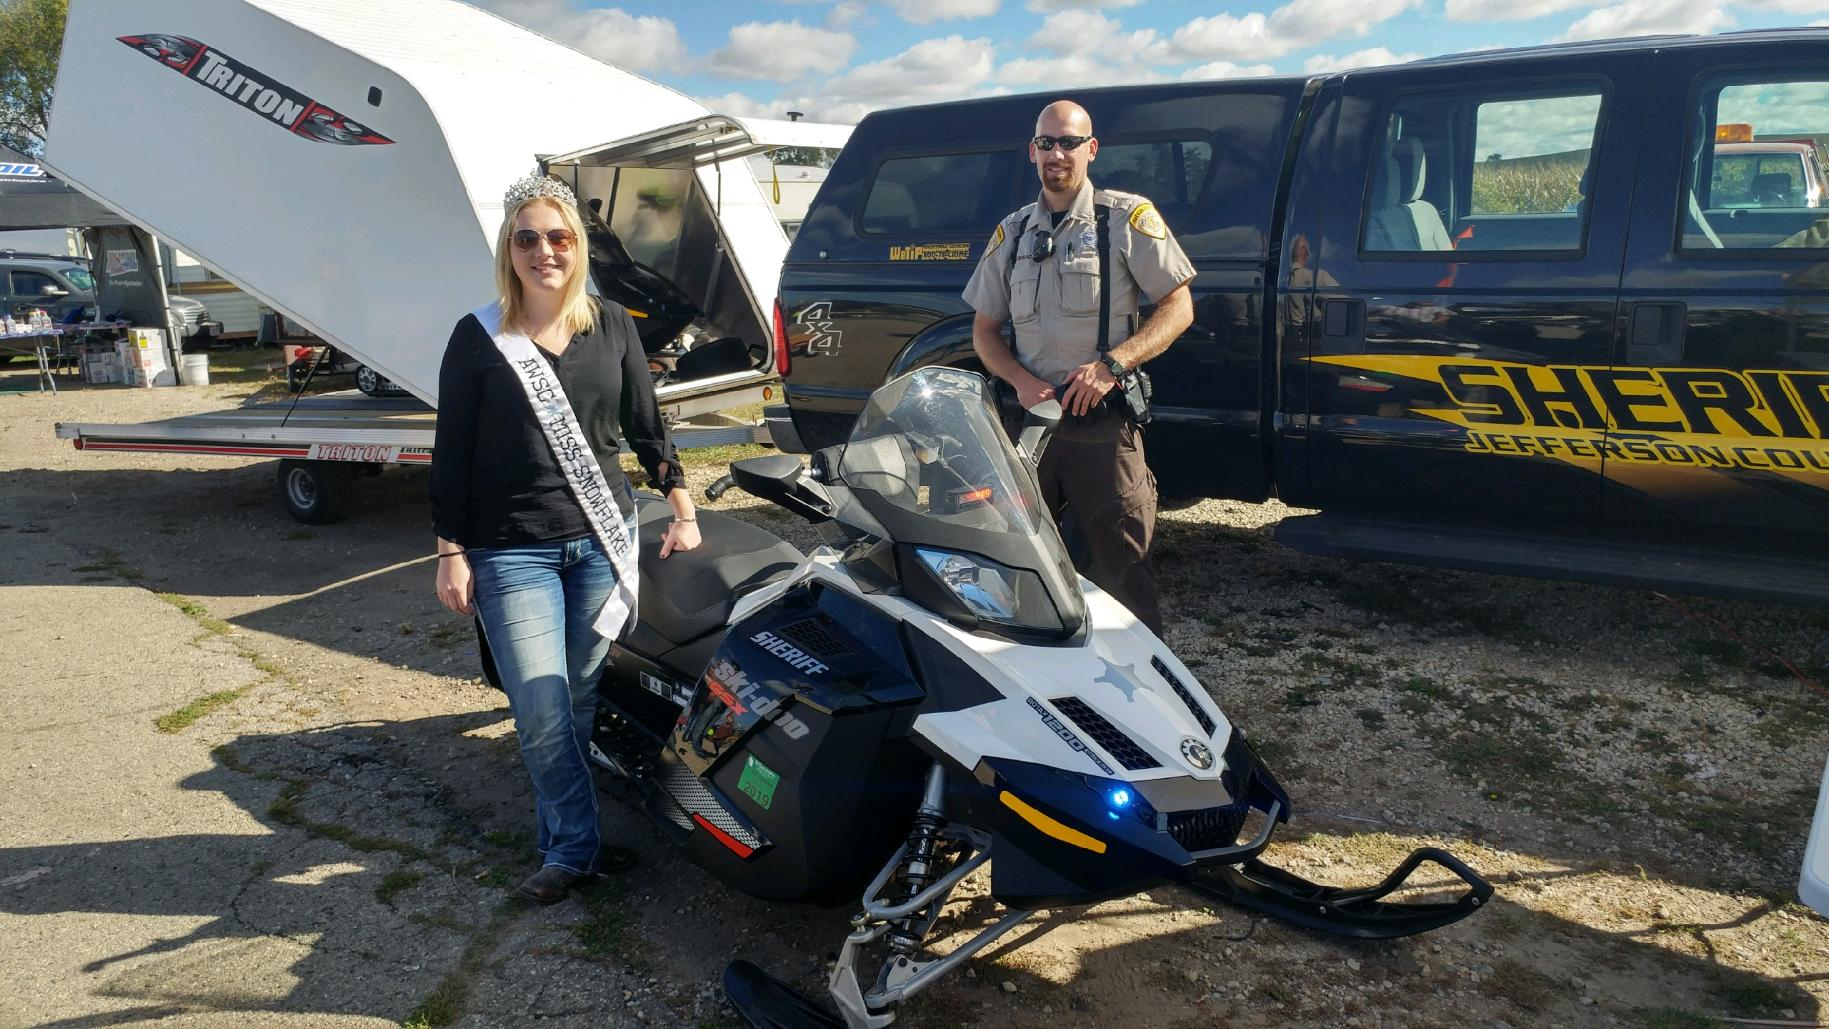 Miss Snowflake, Erica, and the county sheriff trail sled